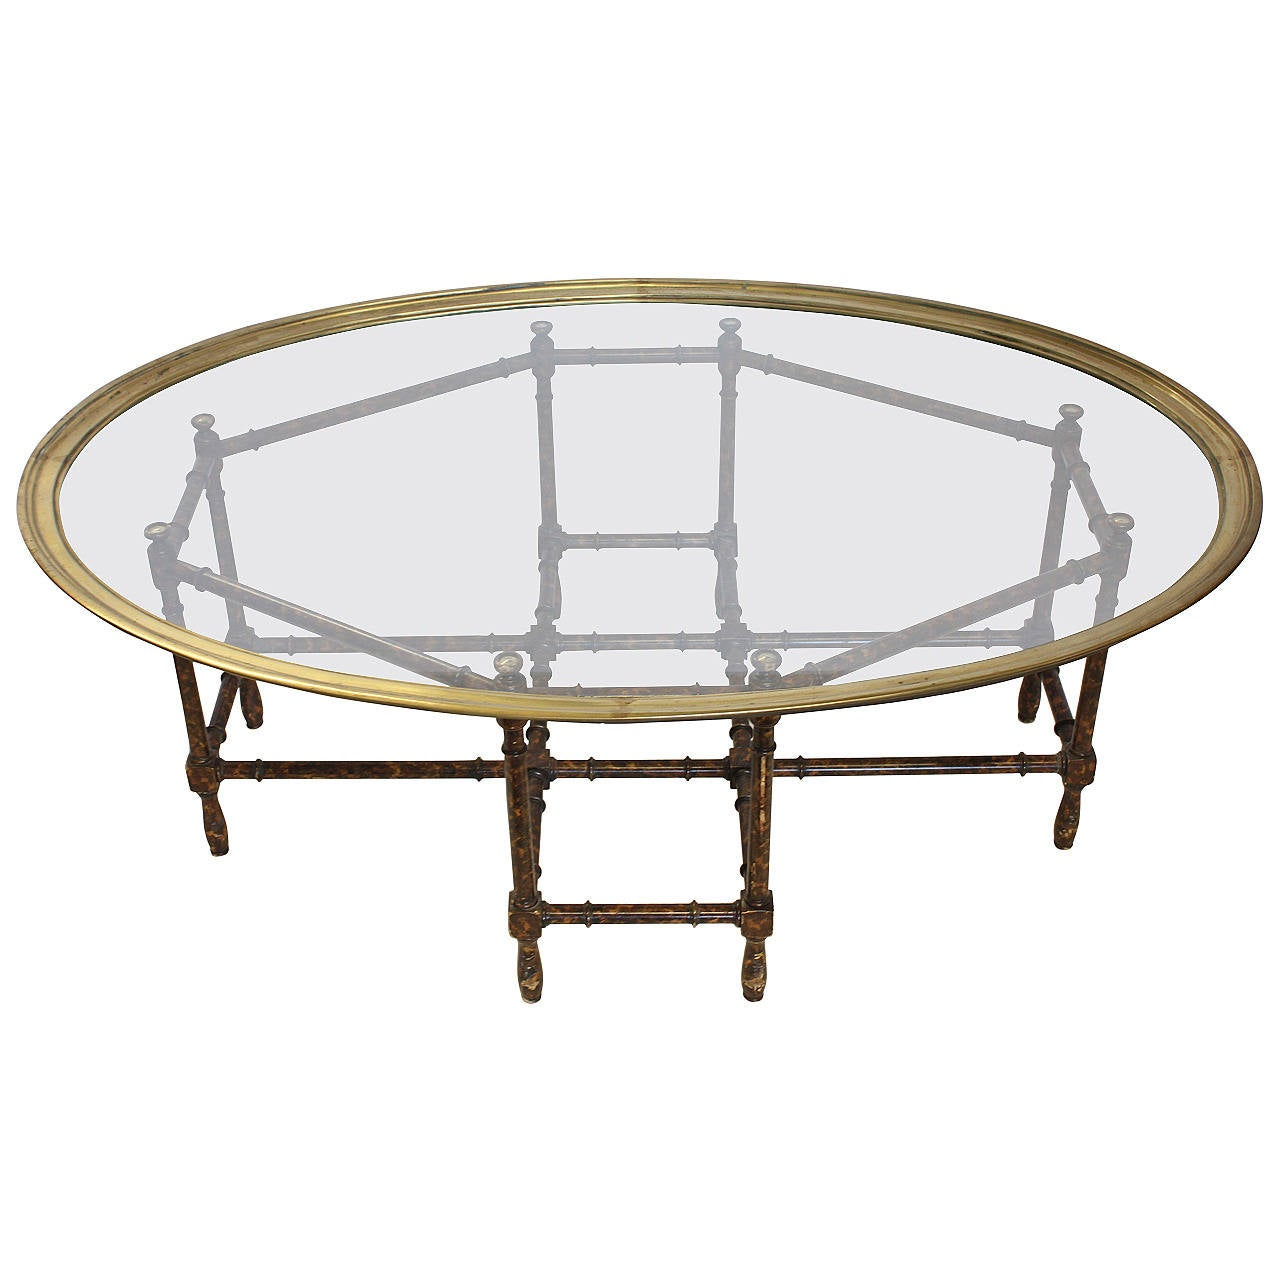 Stylish coffee table by baker for sale at 1stdibs Baker coffee table